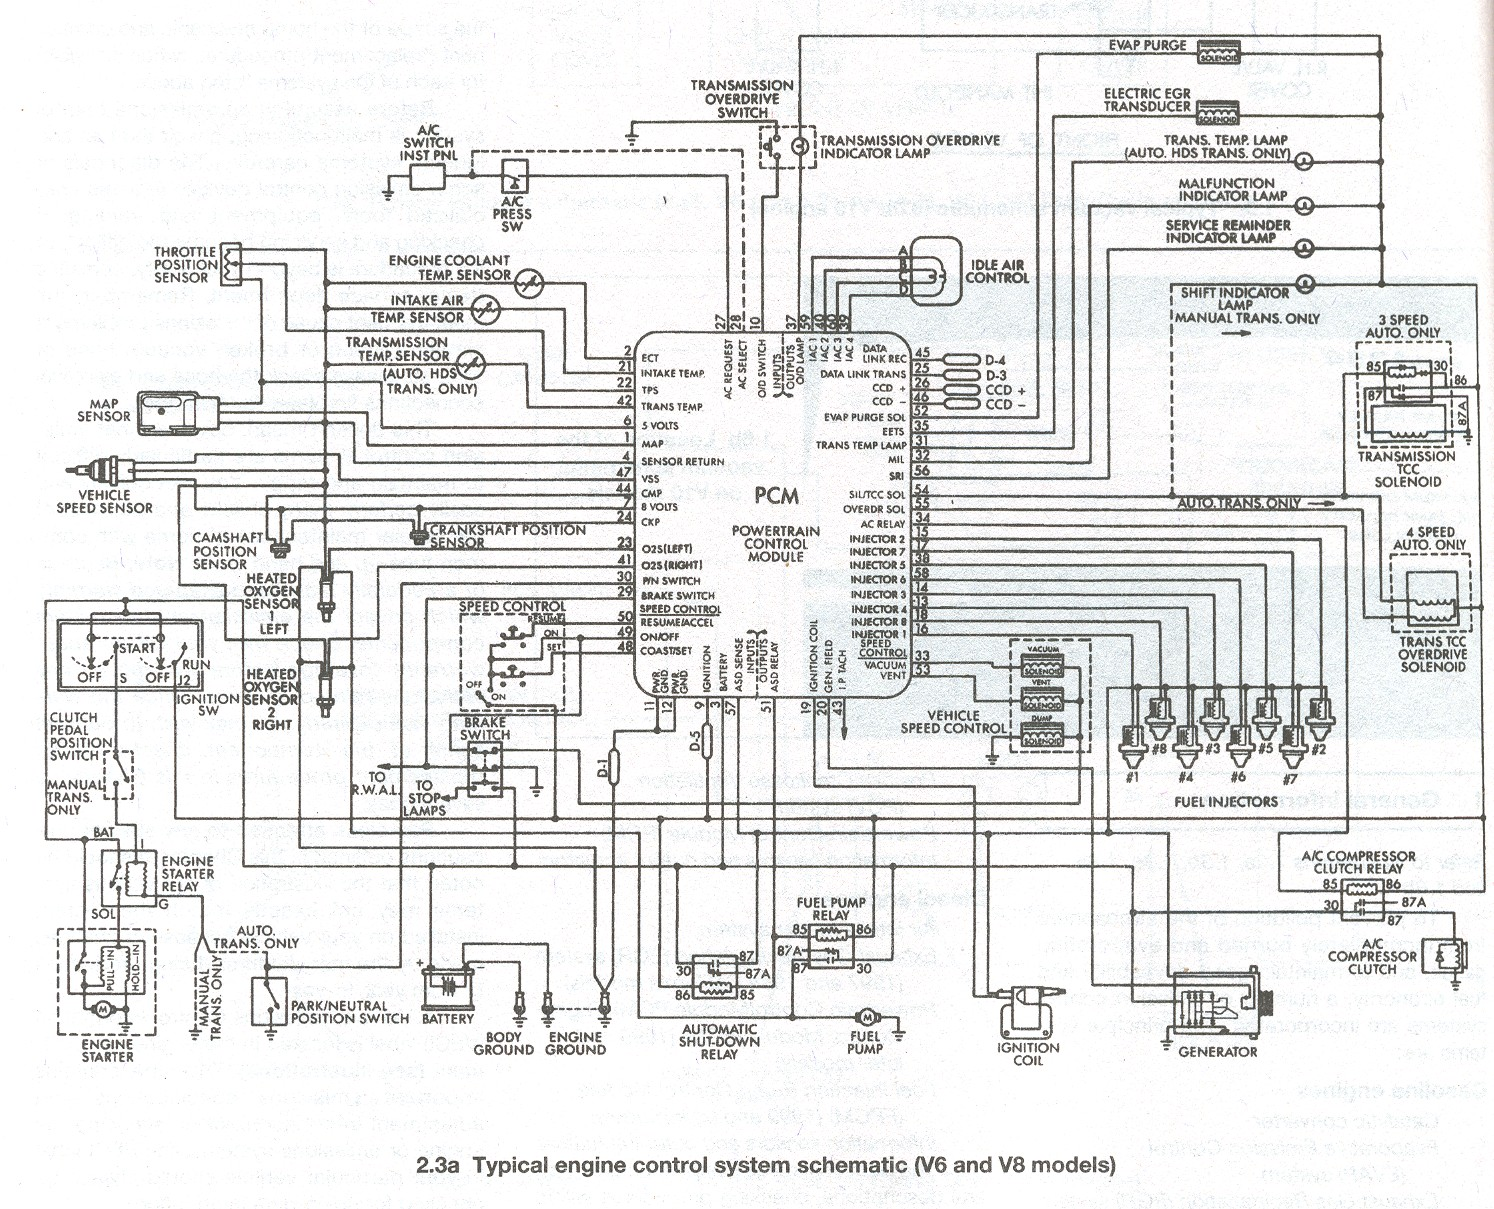 Need 1973 Duster Wiring Diagrams Please